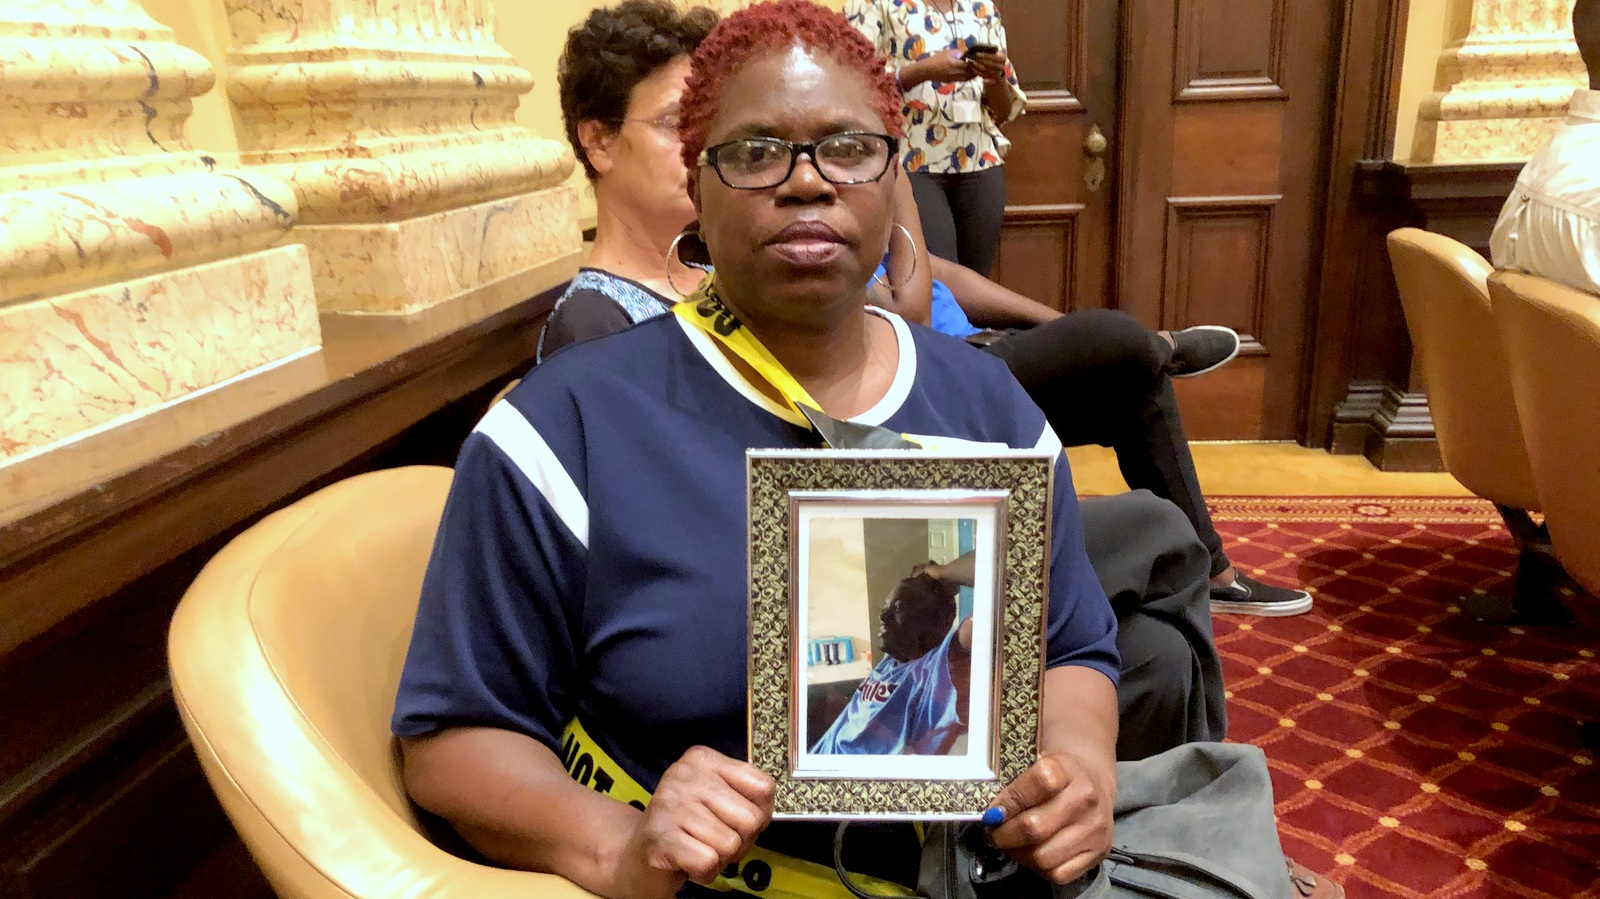 Marcella Holloman Hill, with a photo of her son who was shot and killed in 2012. (Fern Shen)